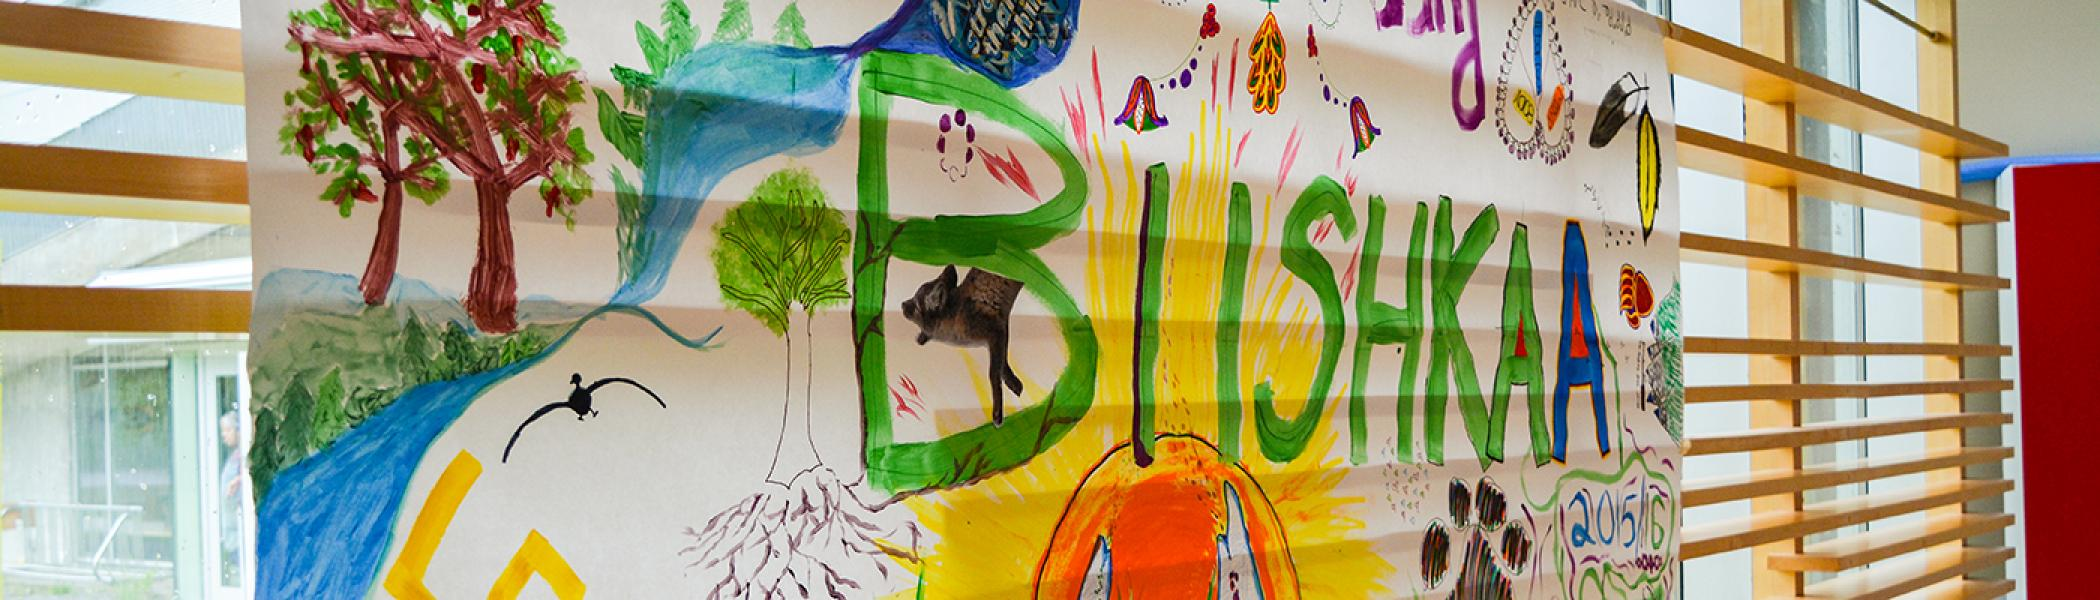 A poster painted with the word BUSHKA in the middle